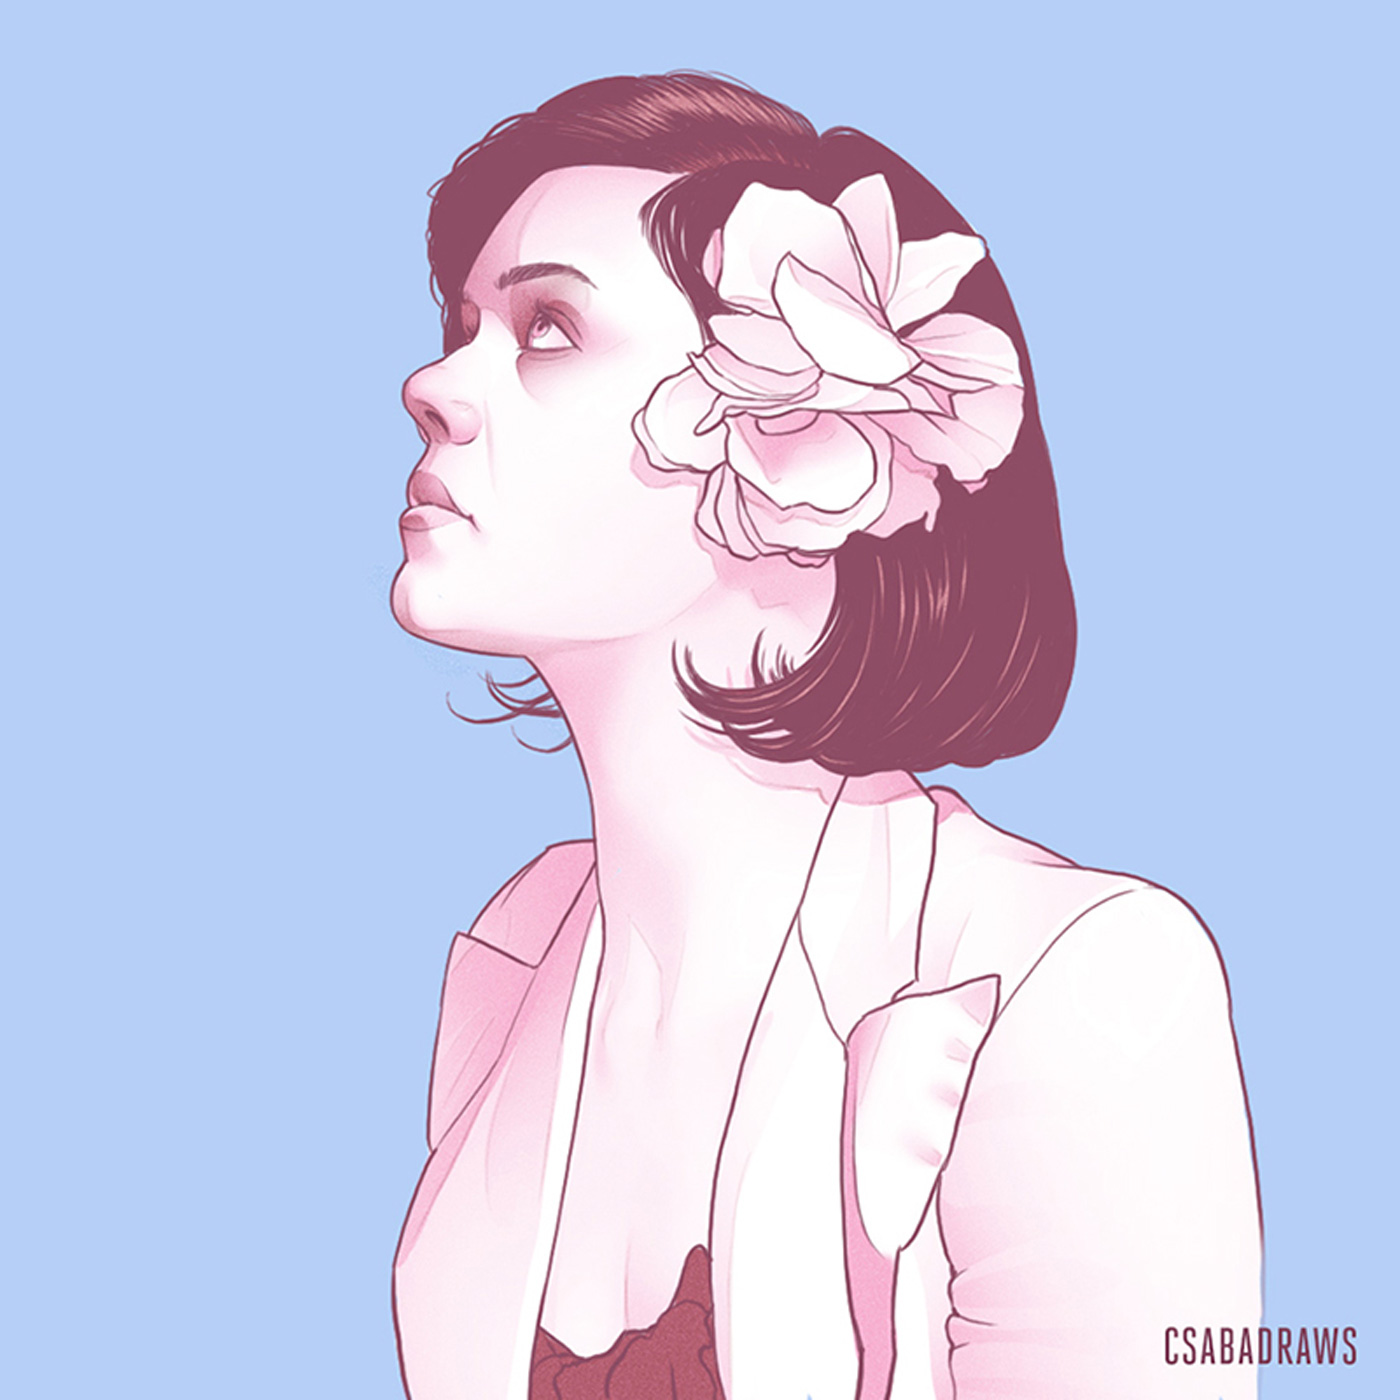 Drawing of a Girl With Short Hair and Flower Pin In Hair